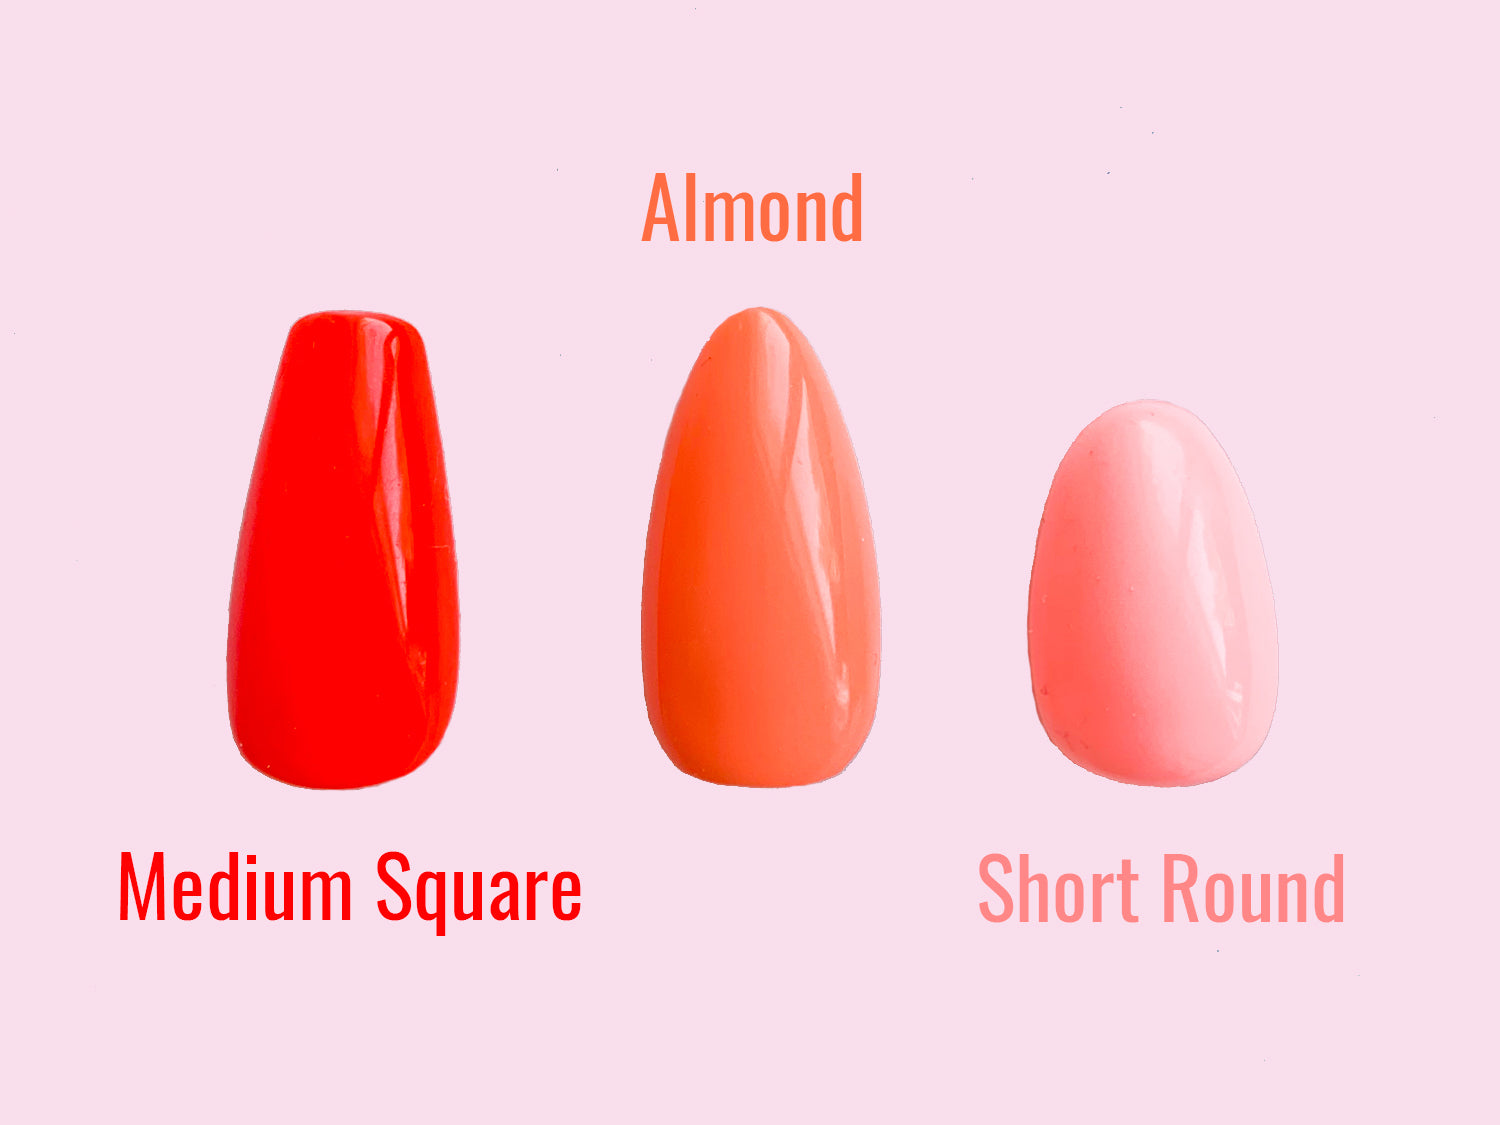 Fingernails are Pretty, Press on nails, Nail size chart, nail size guide